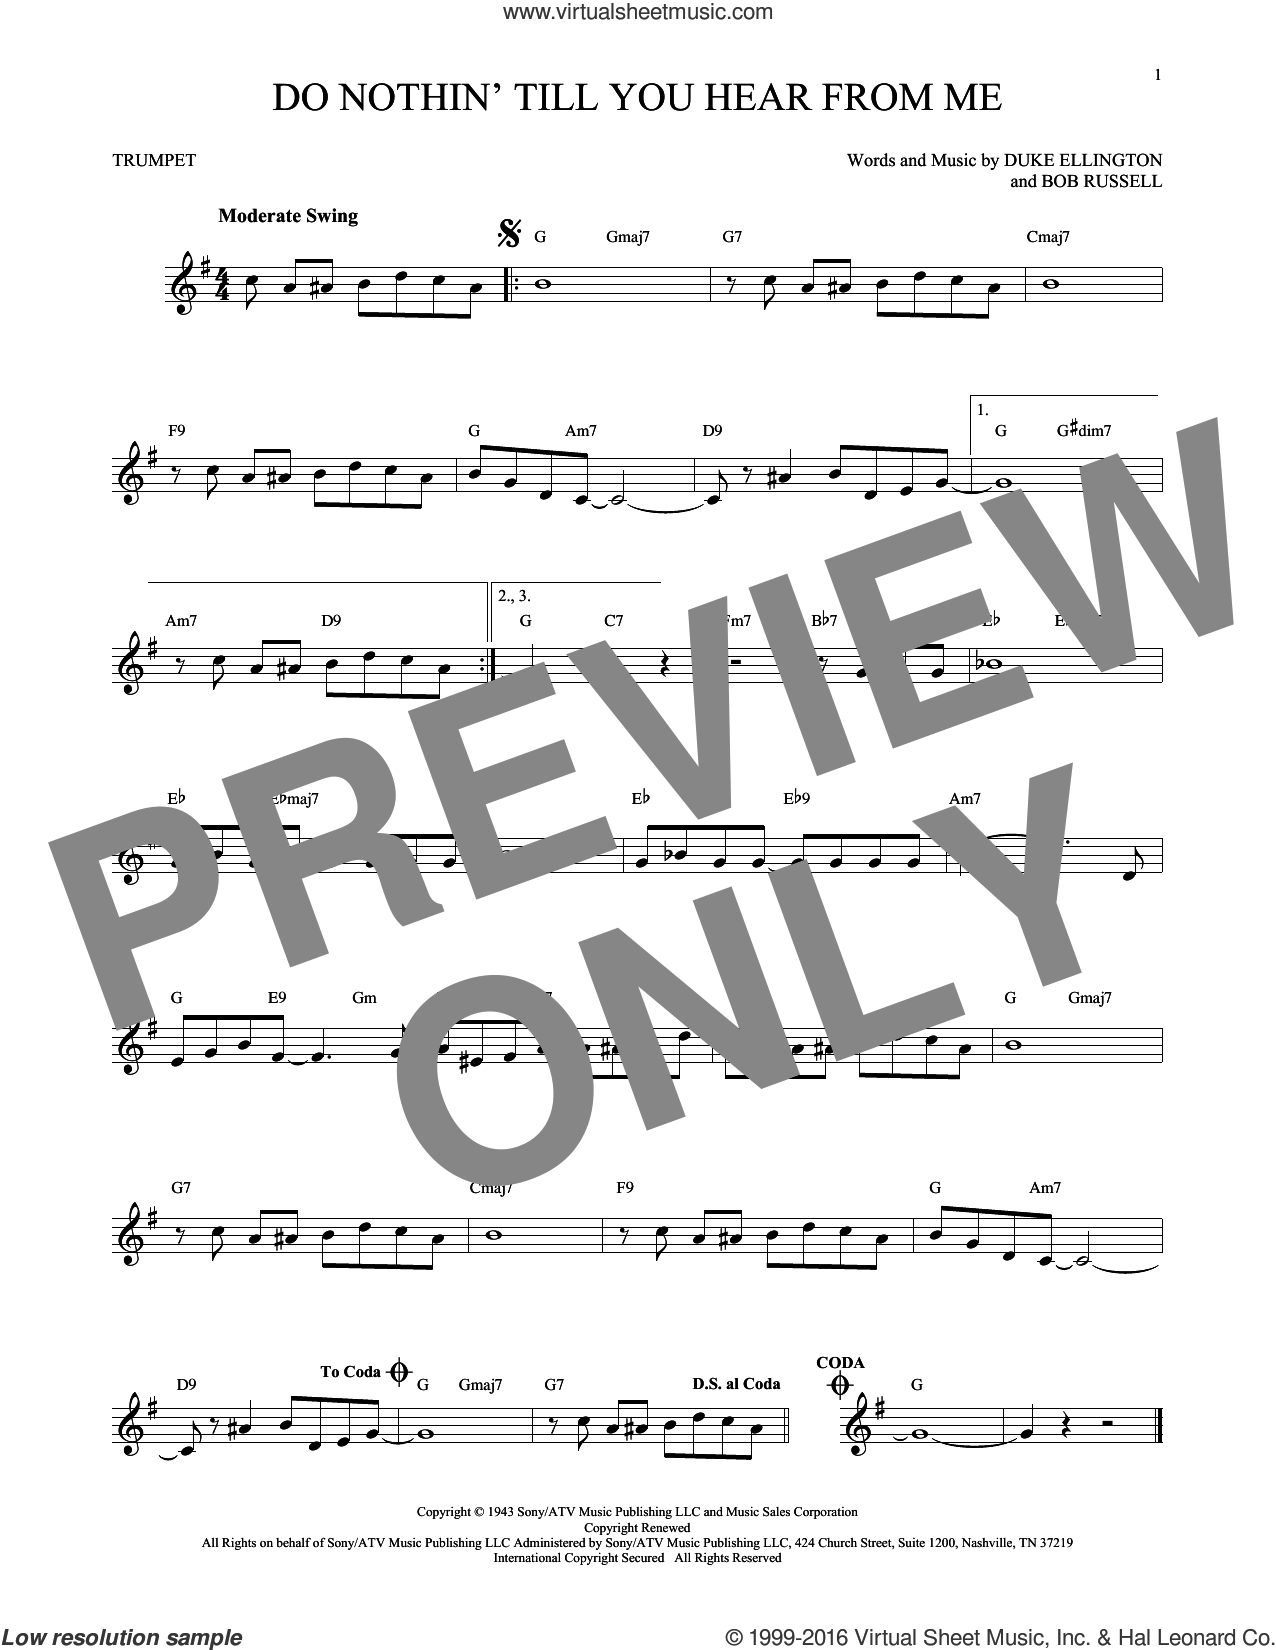 Do Nothin' Till You Hear From Me sheet music for trumpet solo by Duke Ellington and Bob Russell, intermediate skill level